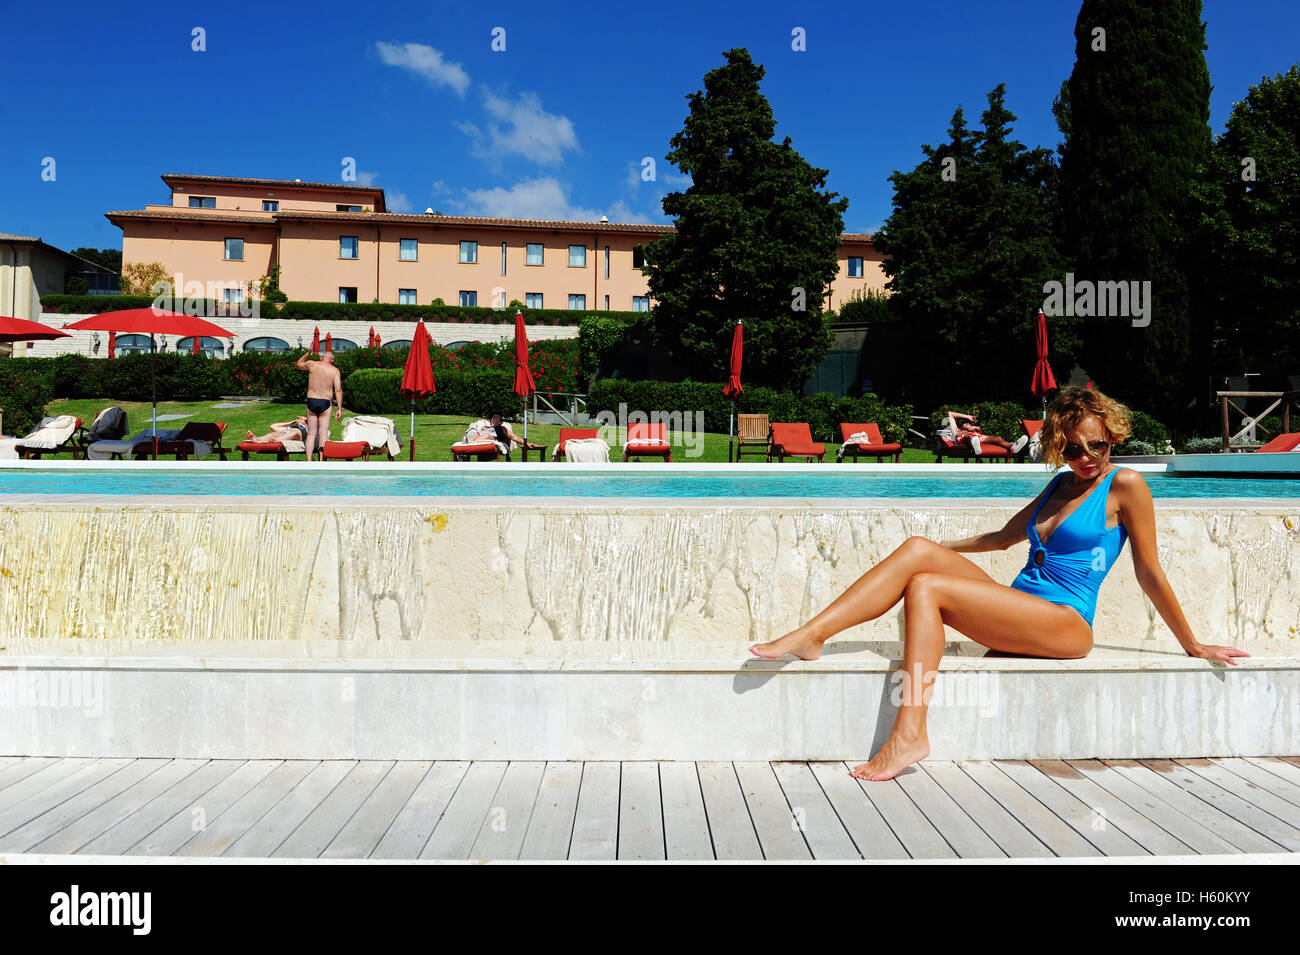 San Casciano Bagni Hotel San Casciano Stock Photos And San Casciano Stock Images Alamy